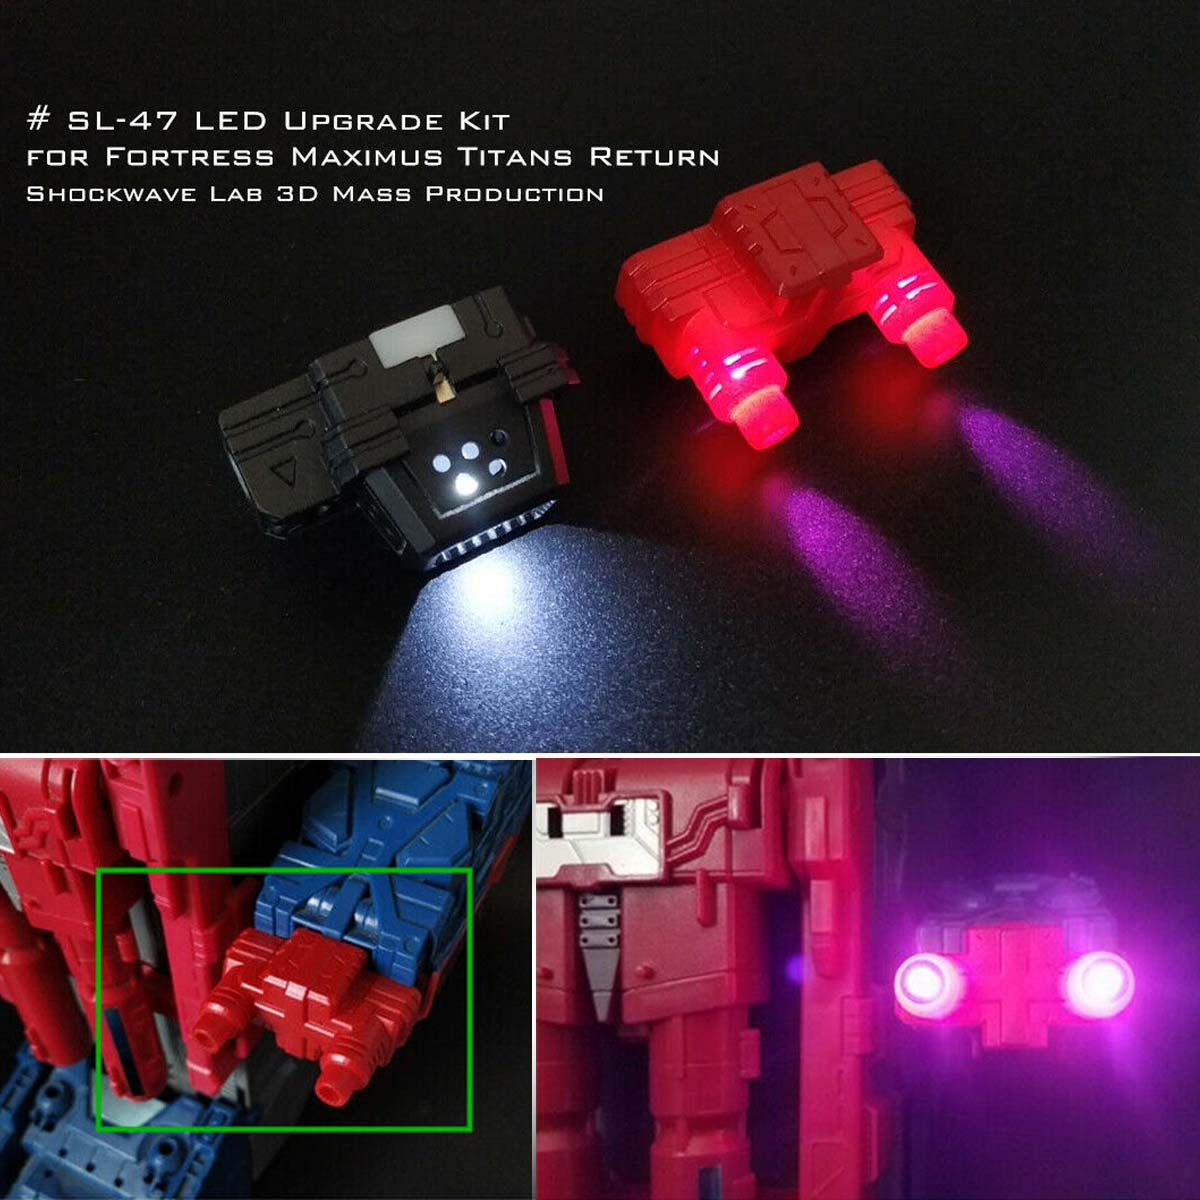 led-upgrade-kit-for-shockwave-lab-sl-47-fortress-maximus-font-b-titans-b-font-return